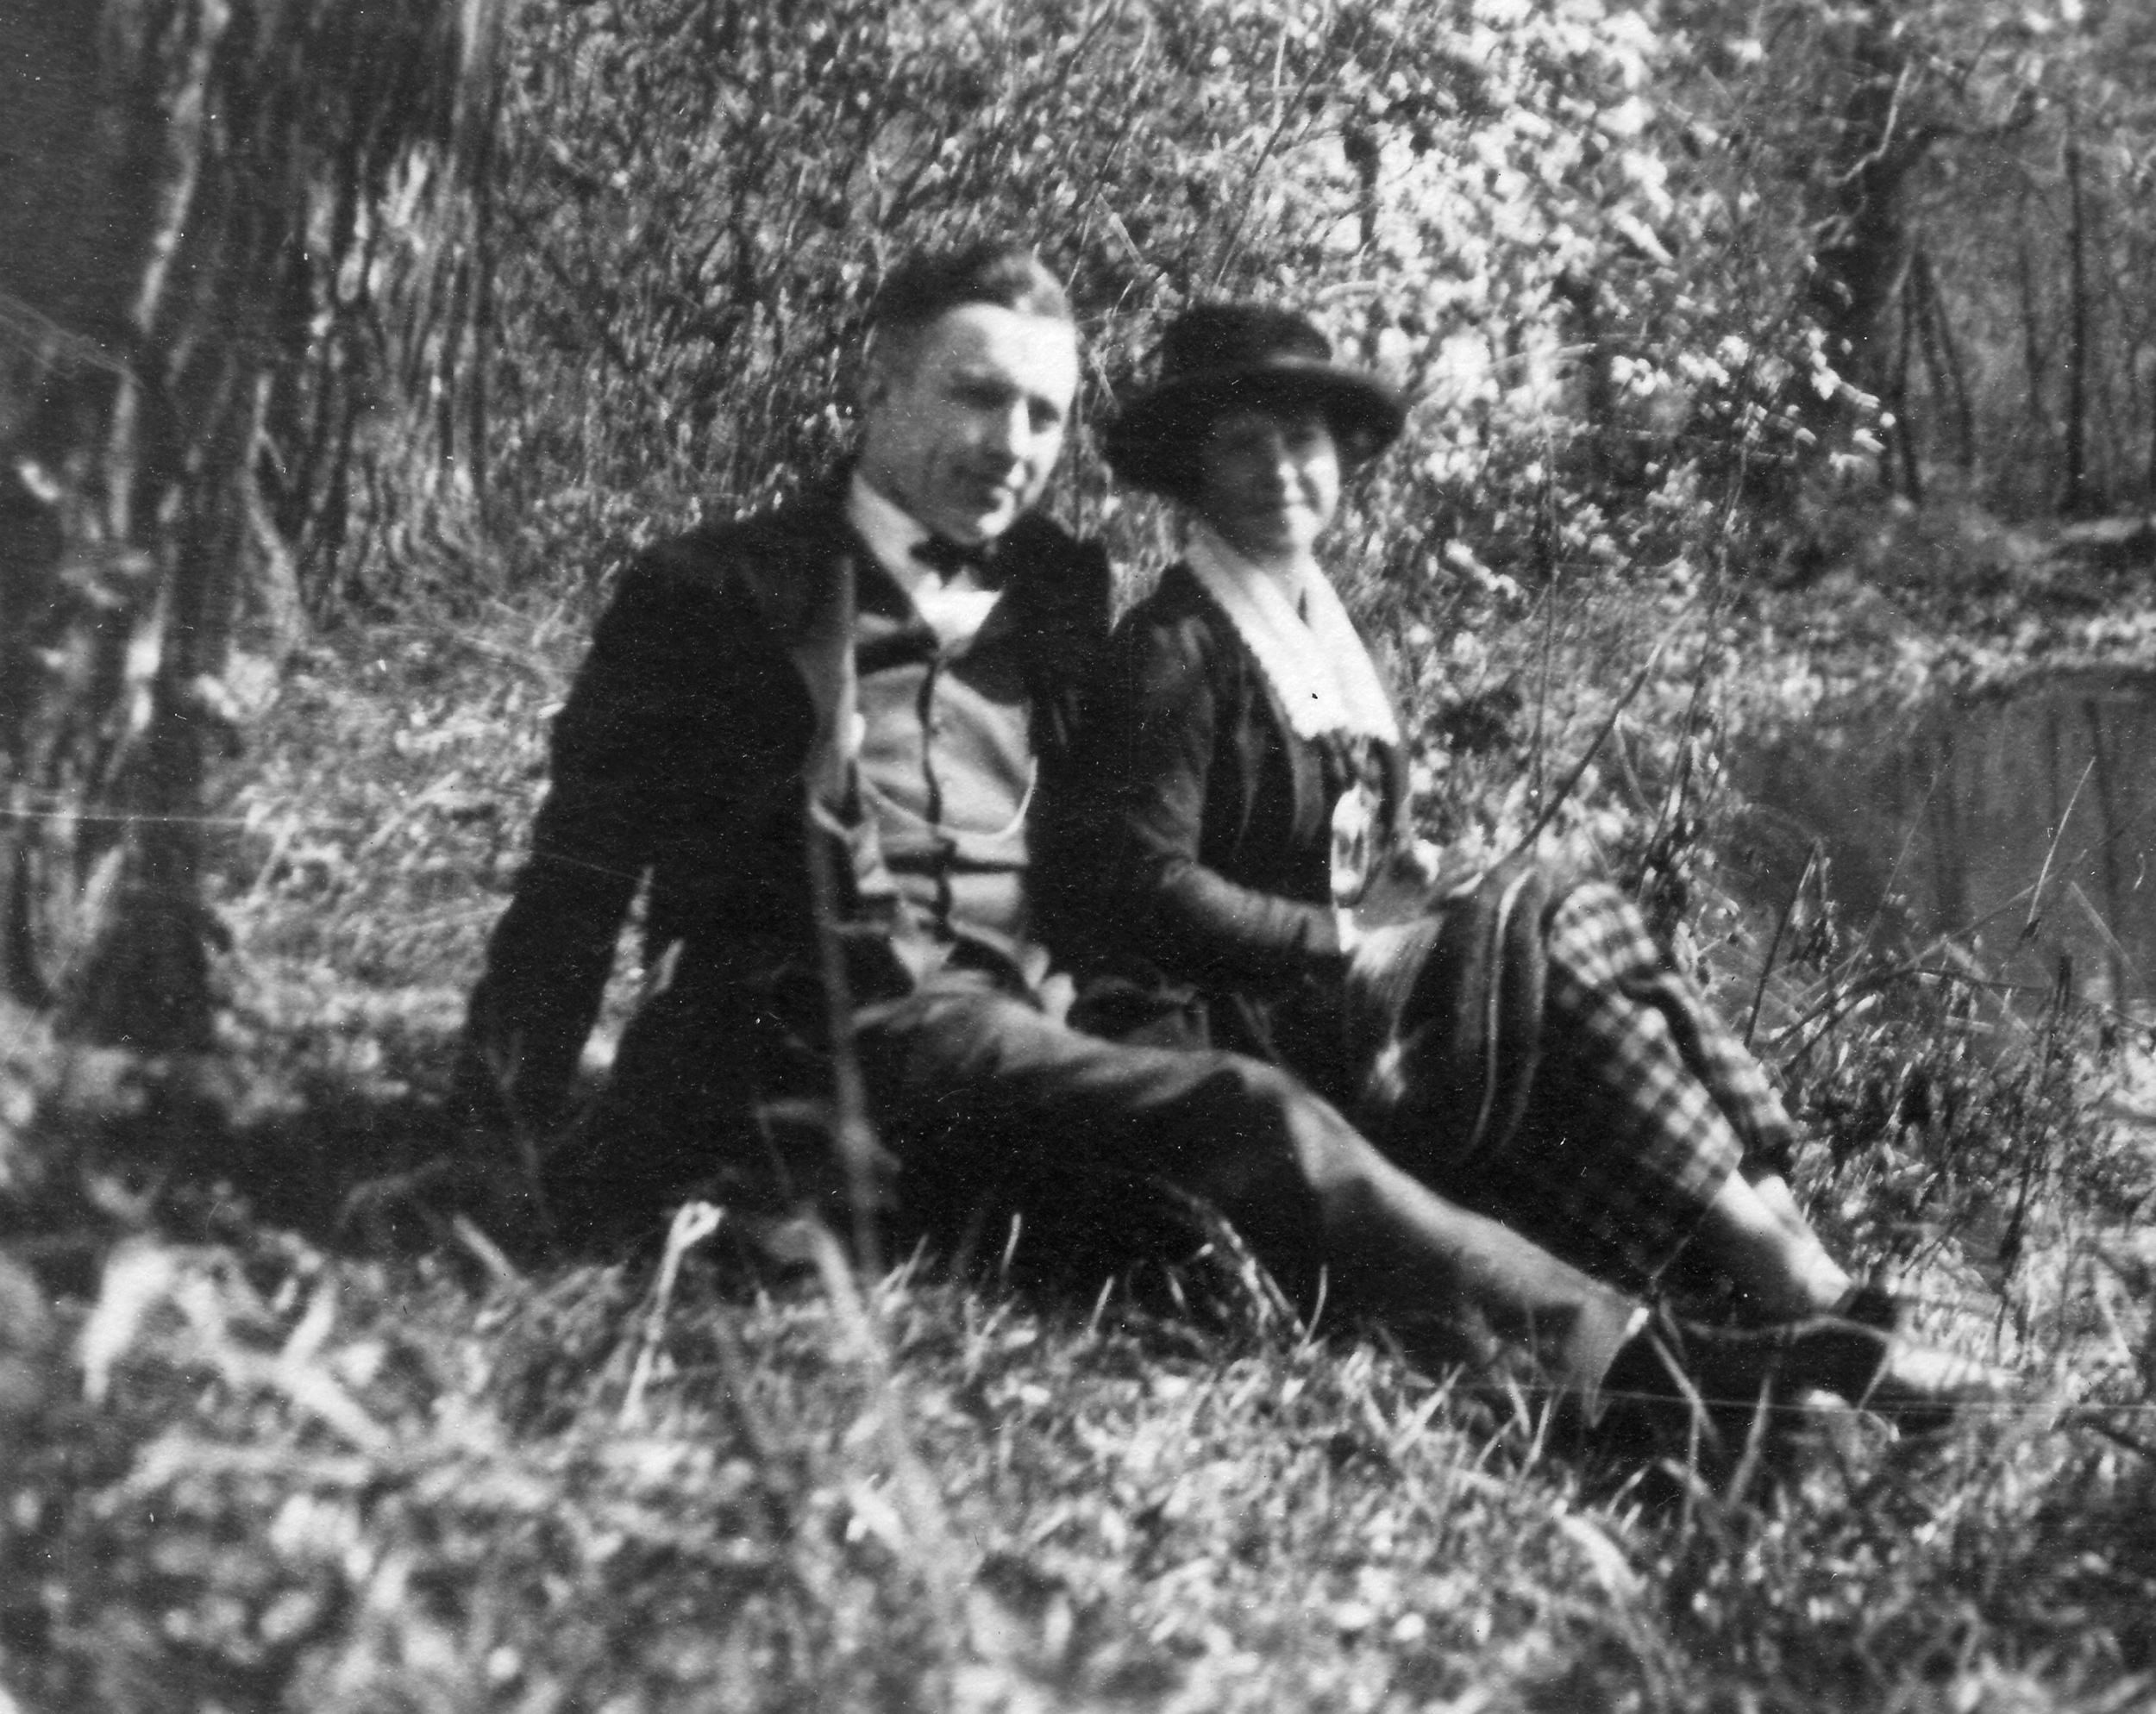 Paul and Betty, fall 1922